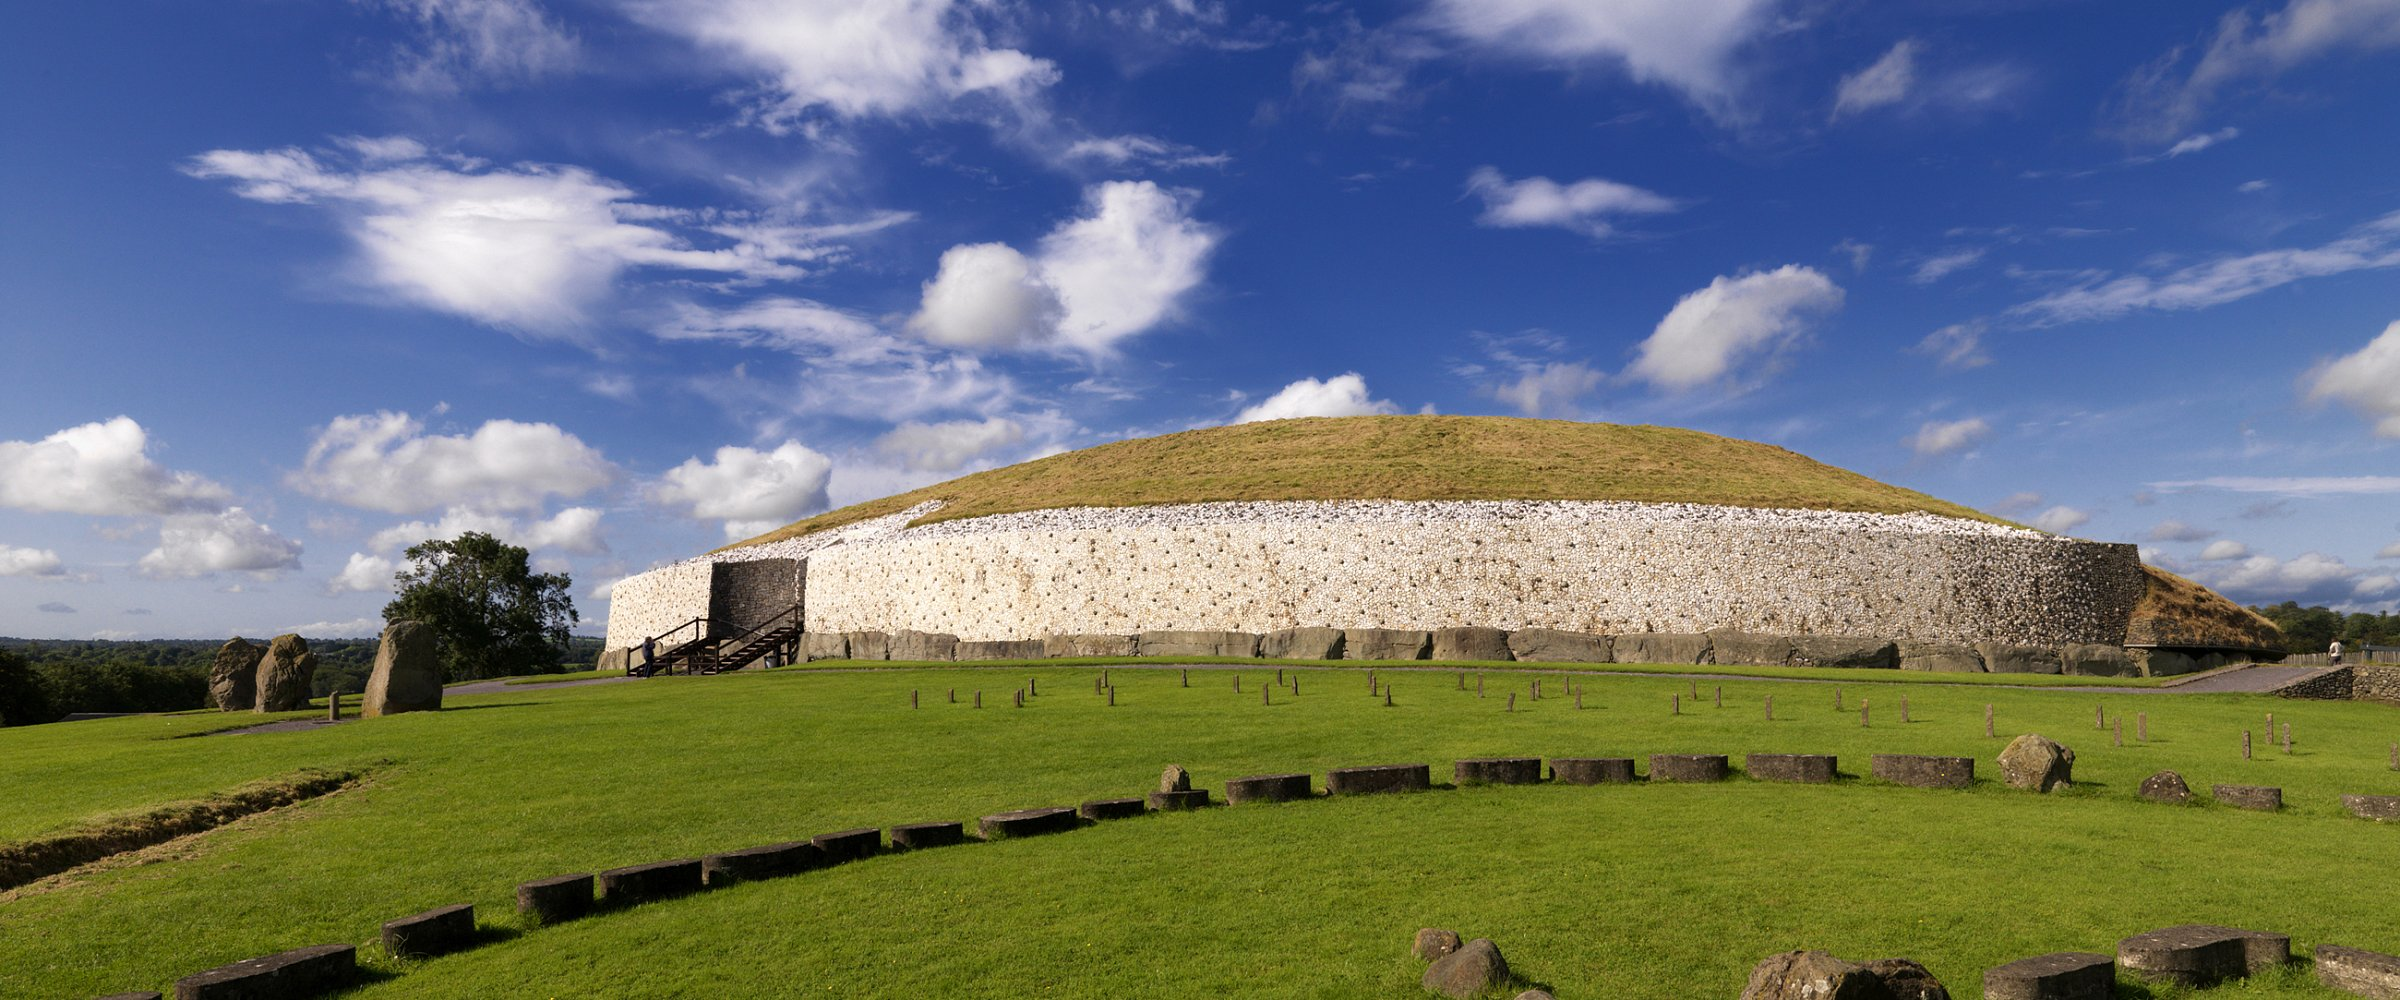 Newgrange, Co Meath, Ireland's Ancient East